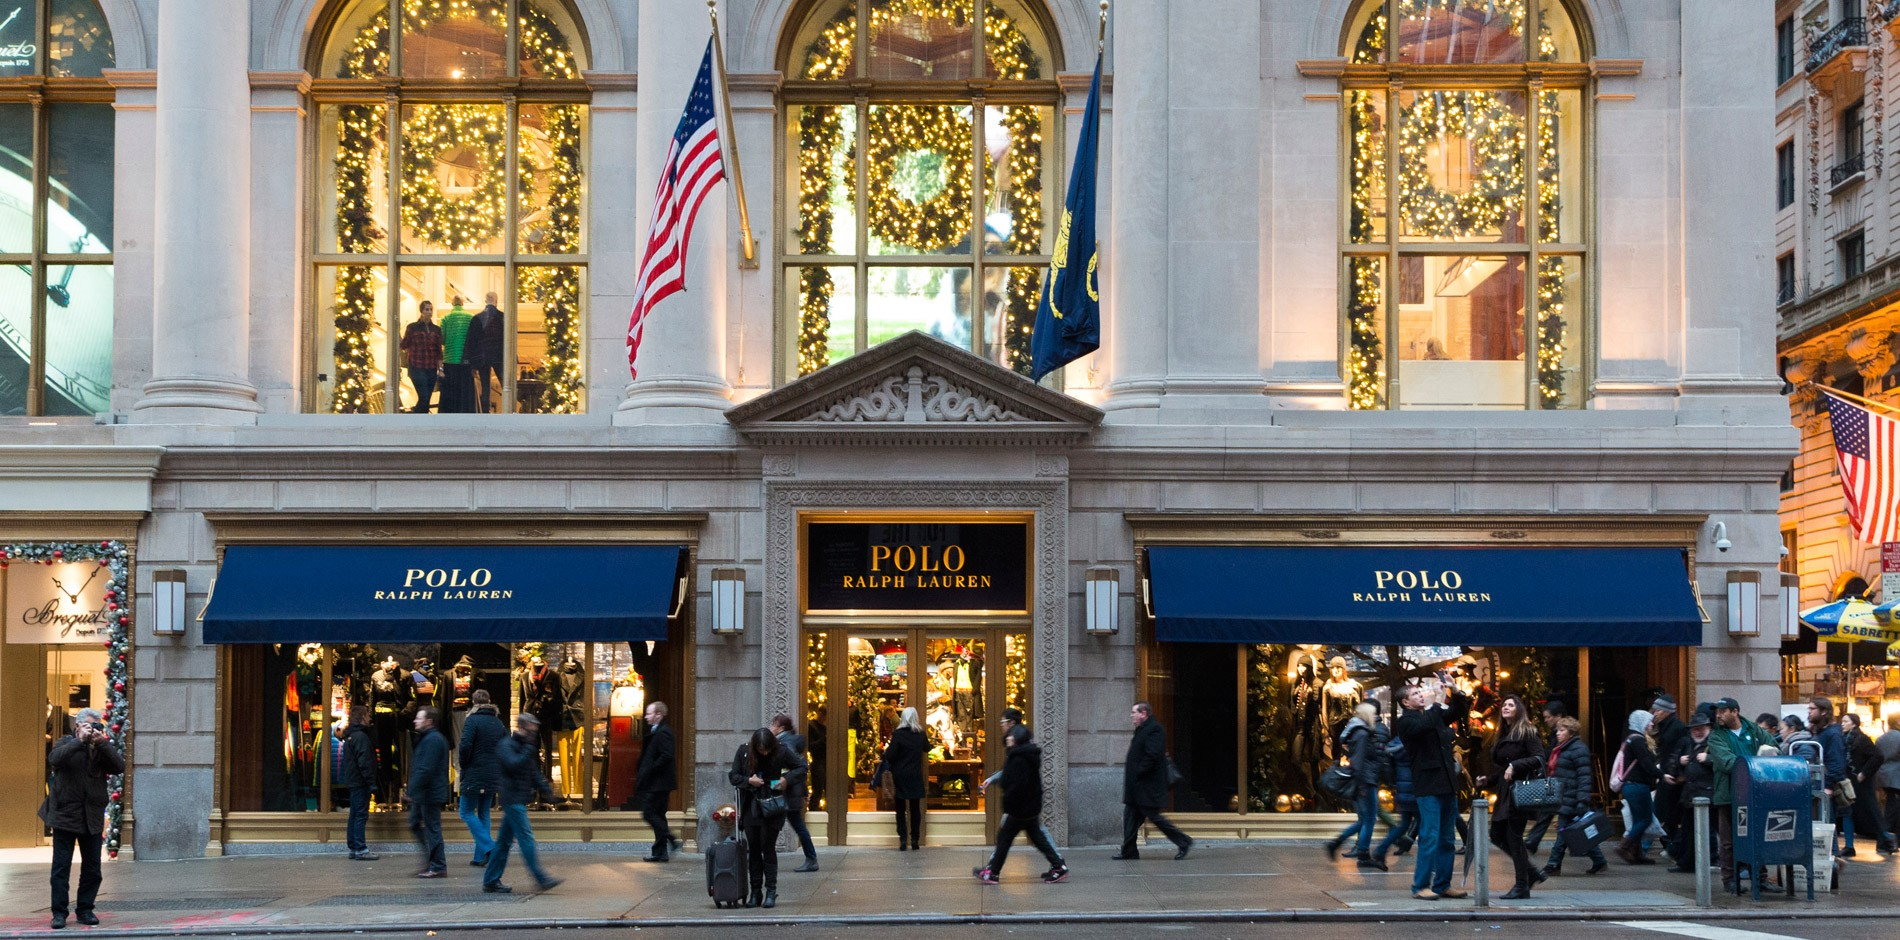 Ralph lauren flagship retail store construction renovation for Ralph lauren flagship store nyc